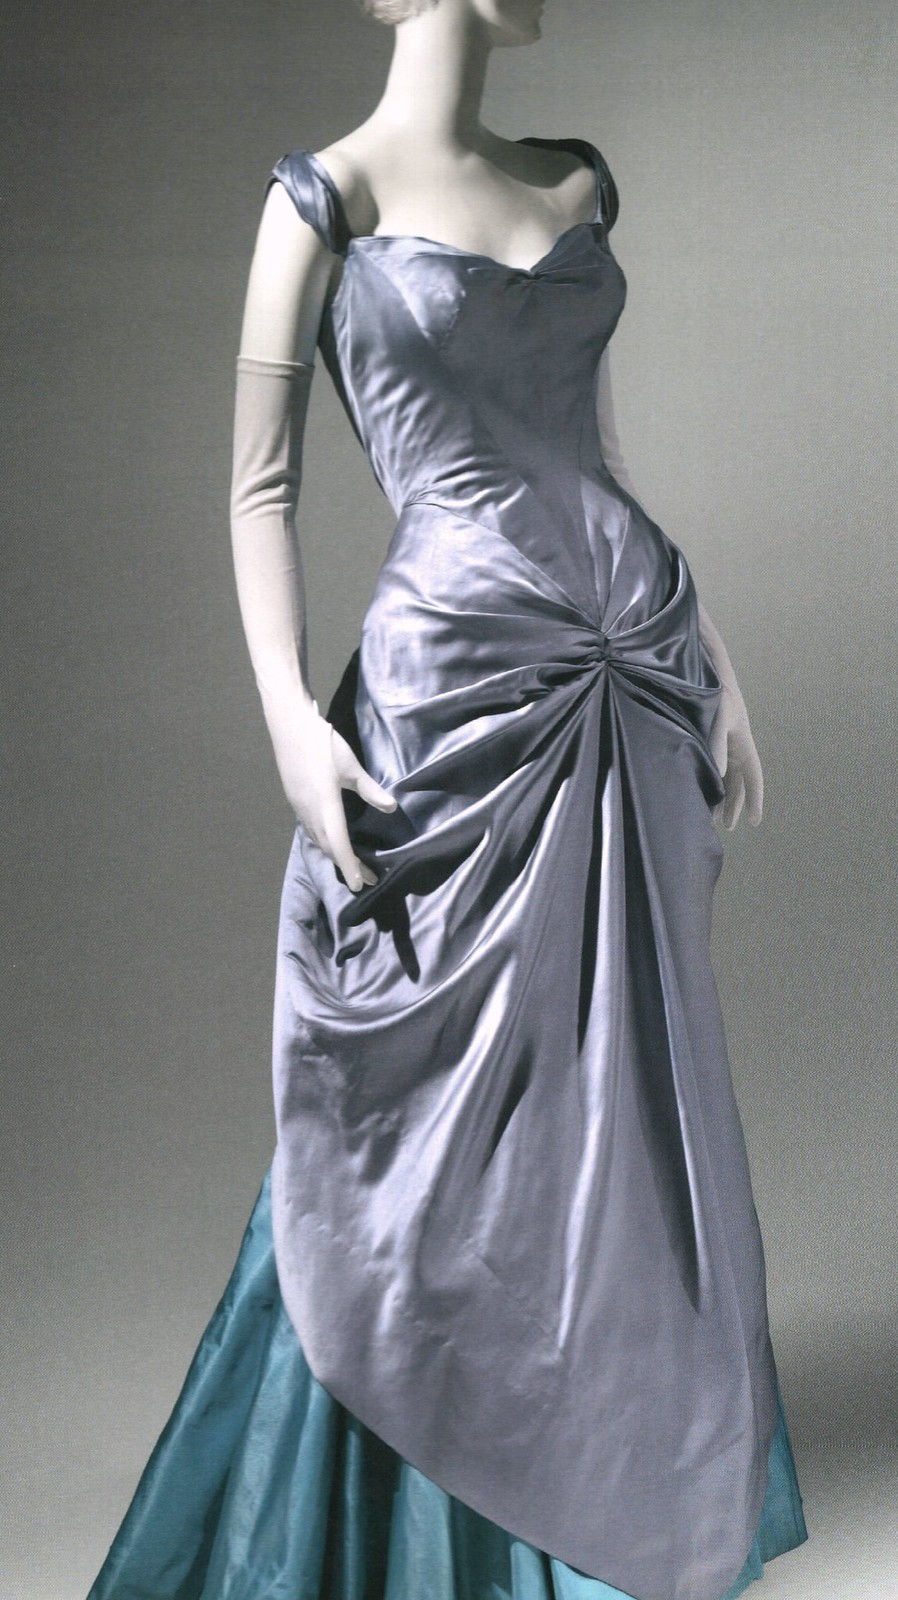 Robe de bal, Charles James, 1950-52